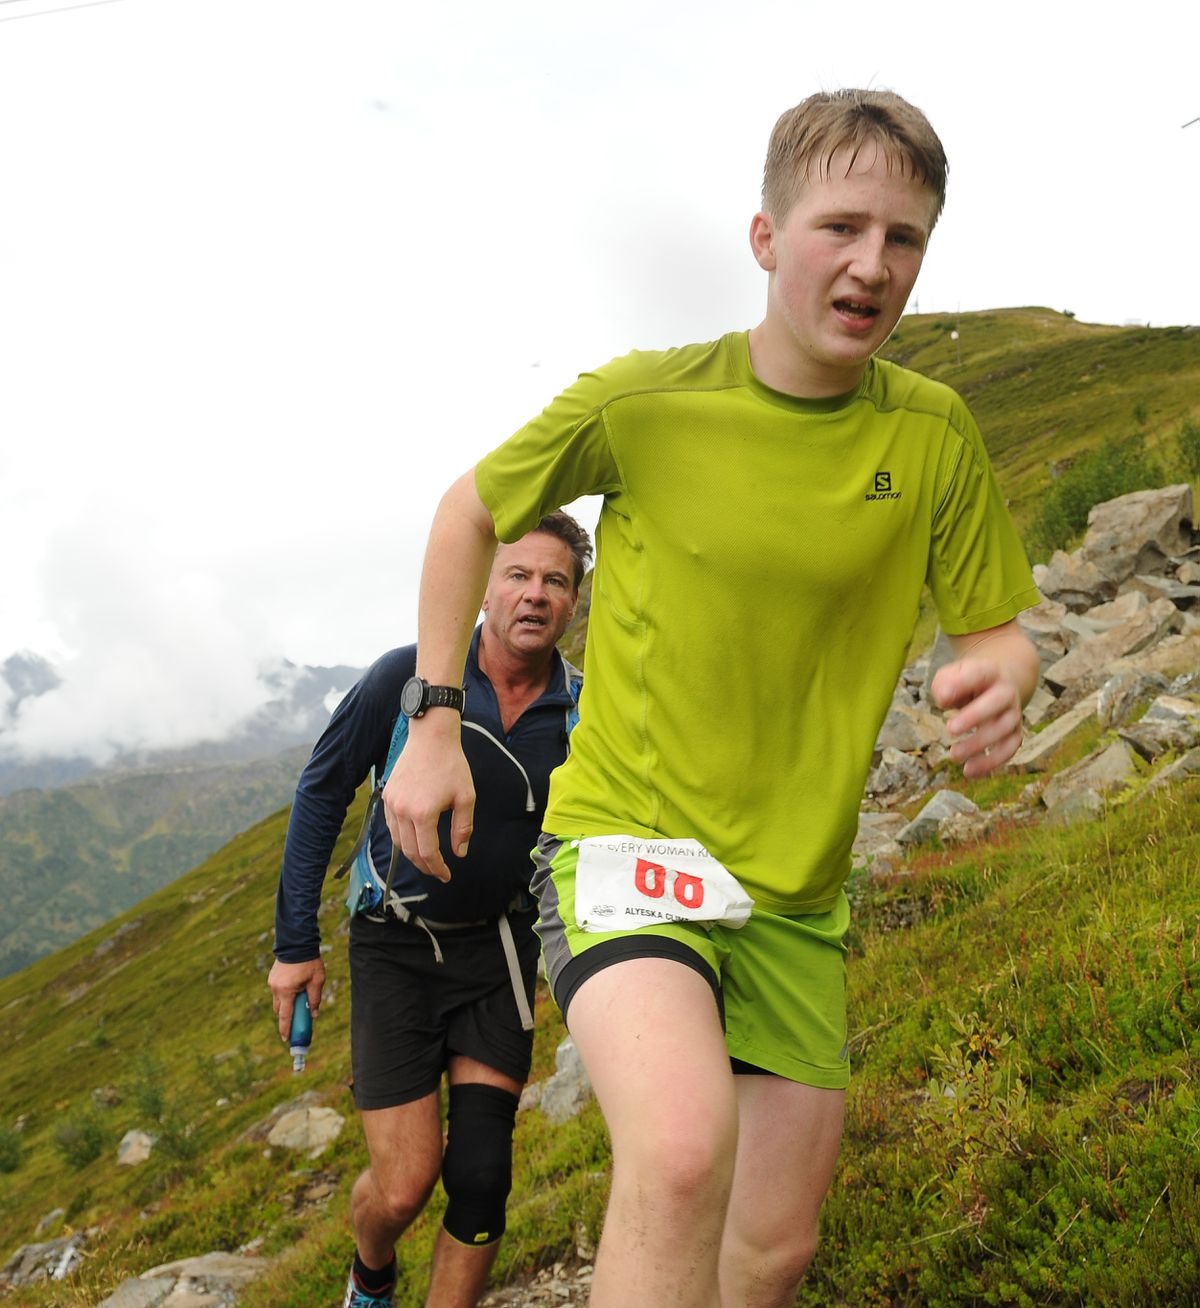 Michael Connelly, 15, leads another runner up the last stretch before reaching the top of the mountain Saturday in the Alyeska Climbathon. (Bob Hallinen / Alaska Dispatch News)